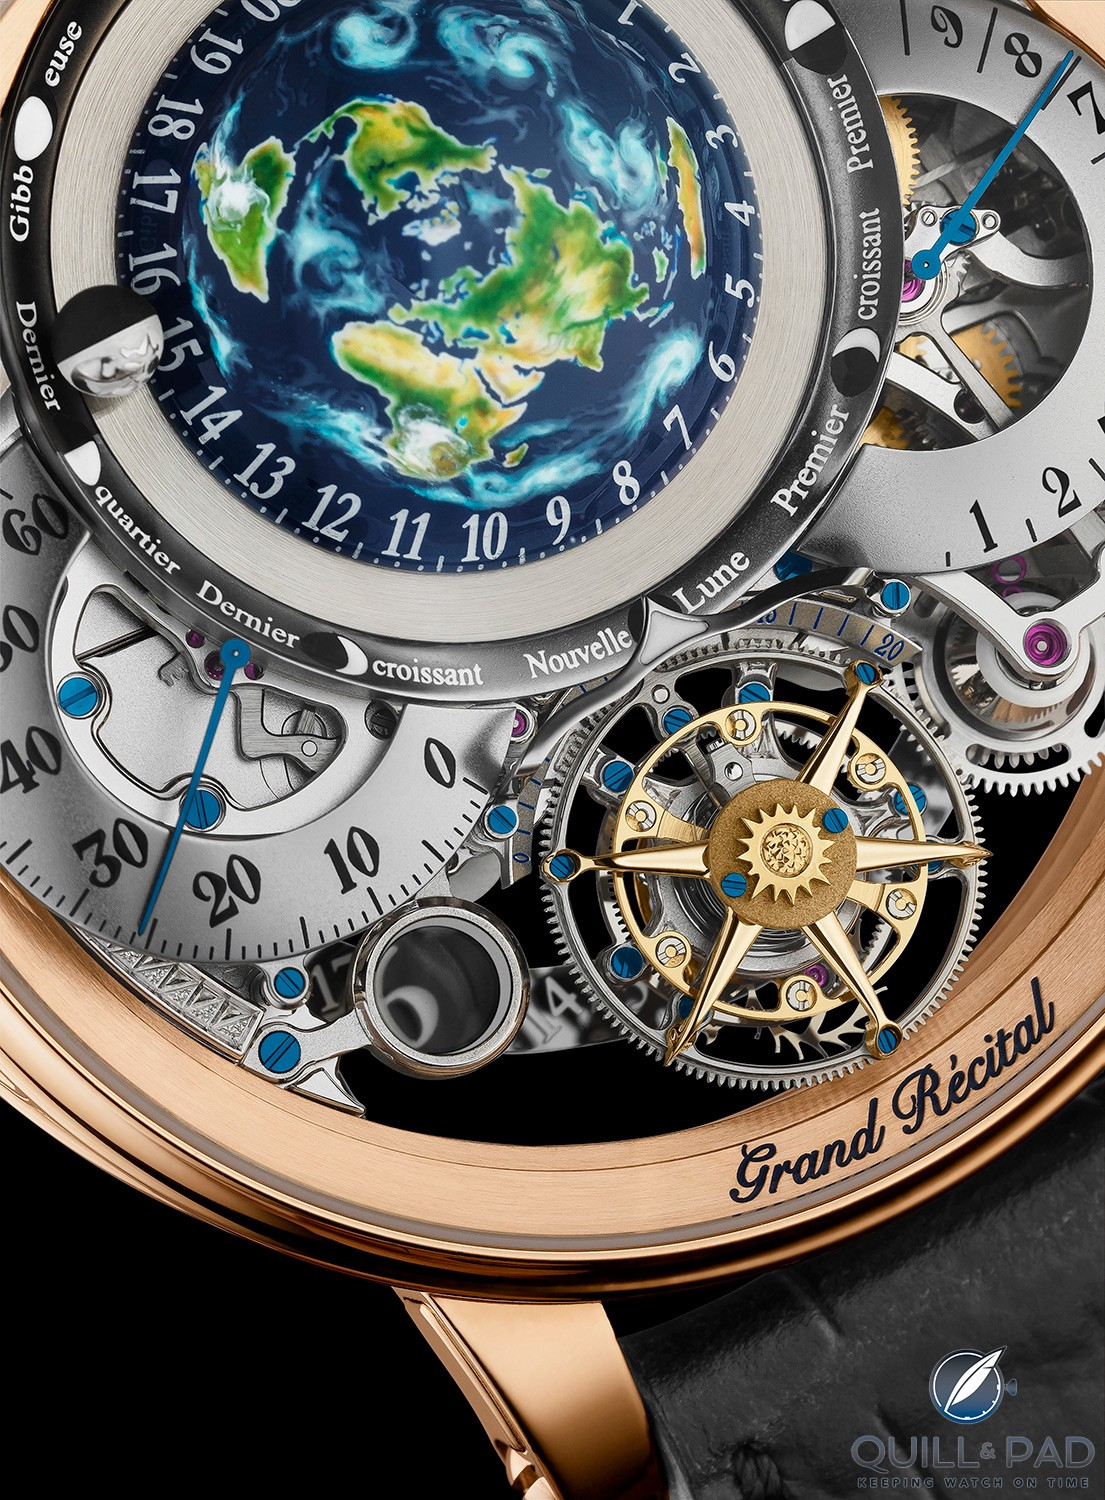 The moon (visible beside the 15 top left) on the Bovet Récital 22